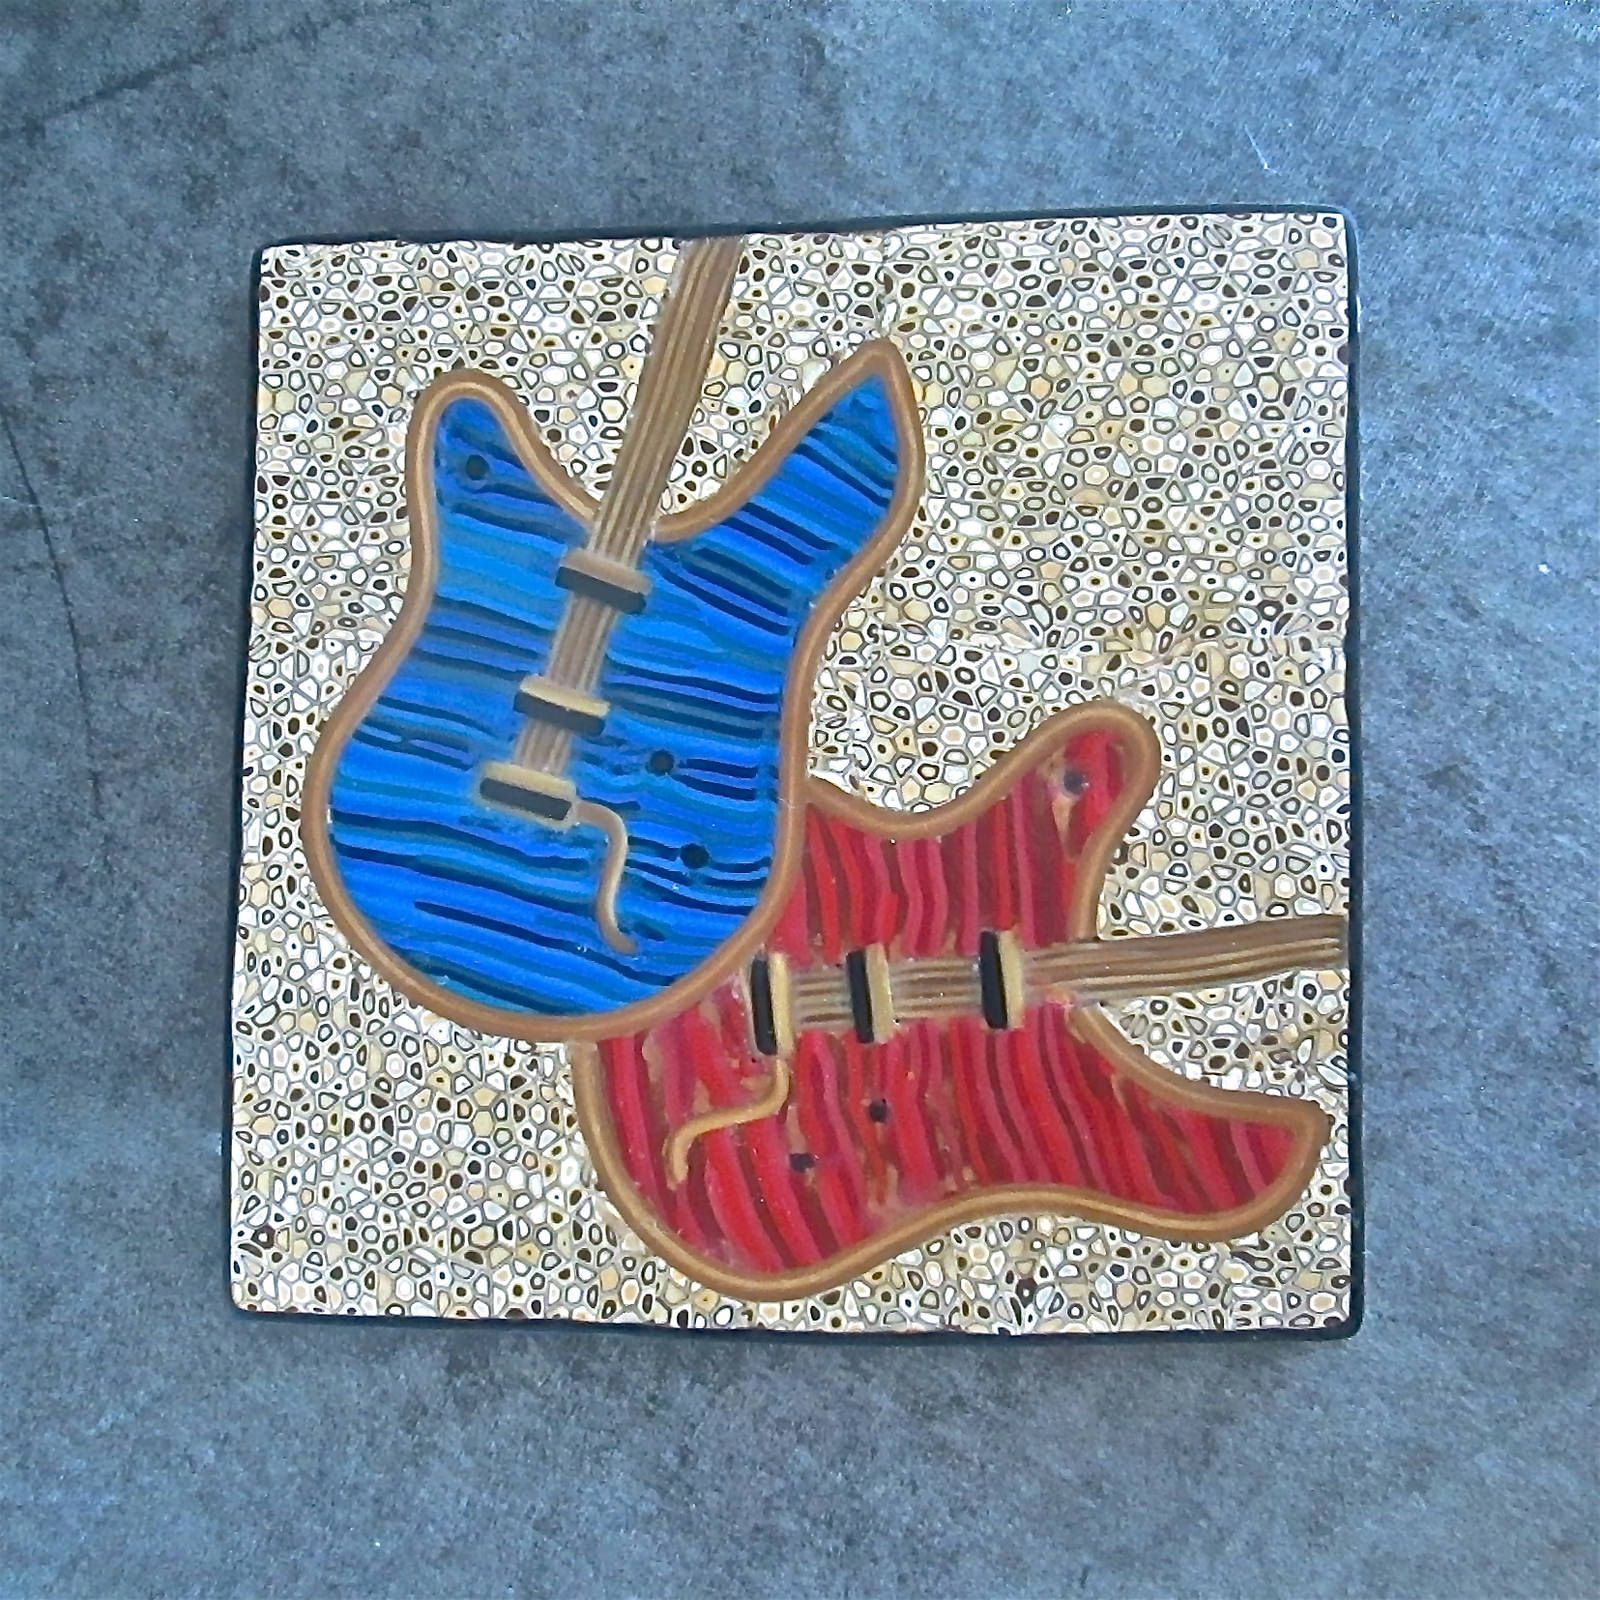 https://flic.kr/p/FXgr5t | Rock & Roll Wall Tile by Deb Hart ...